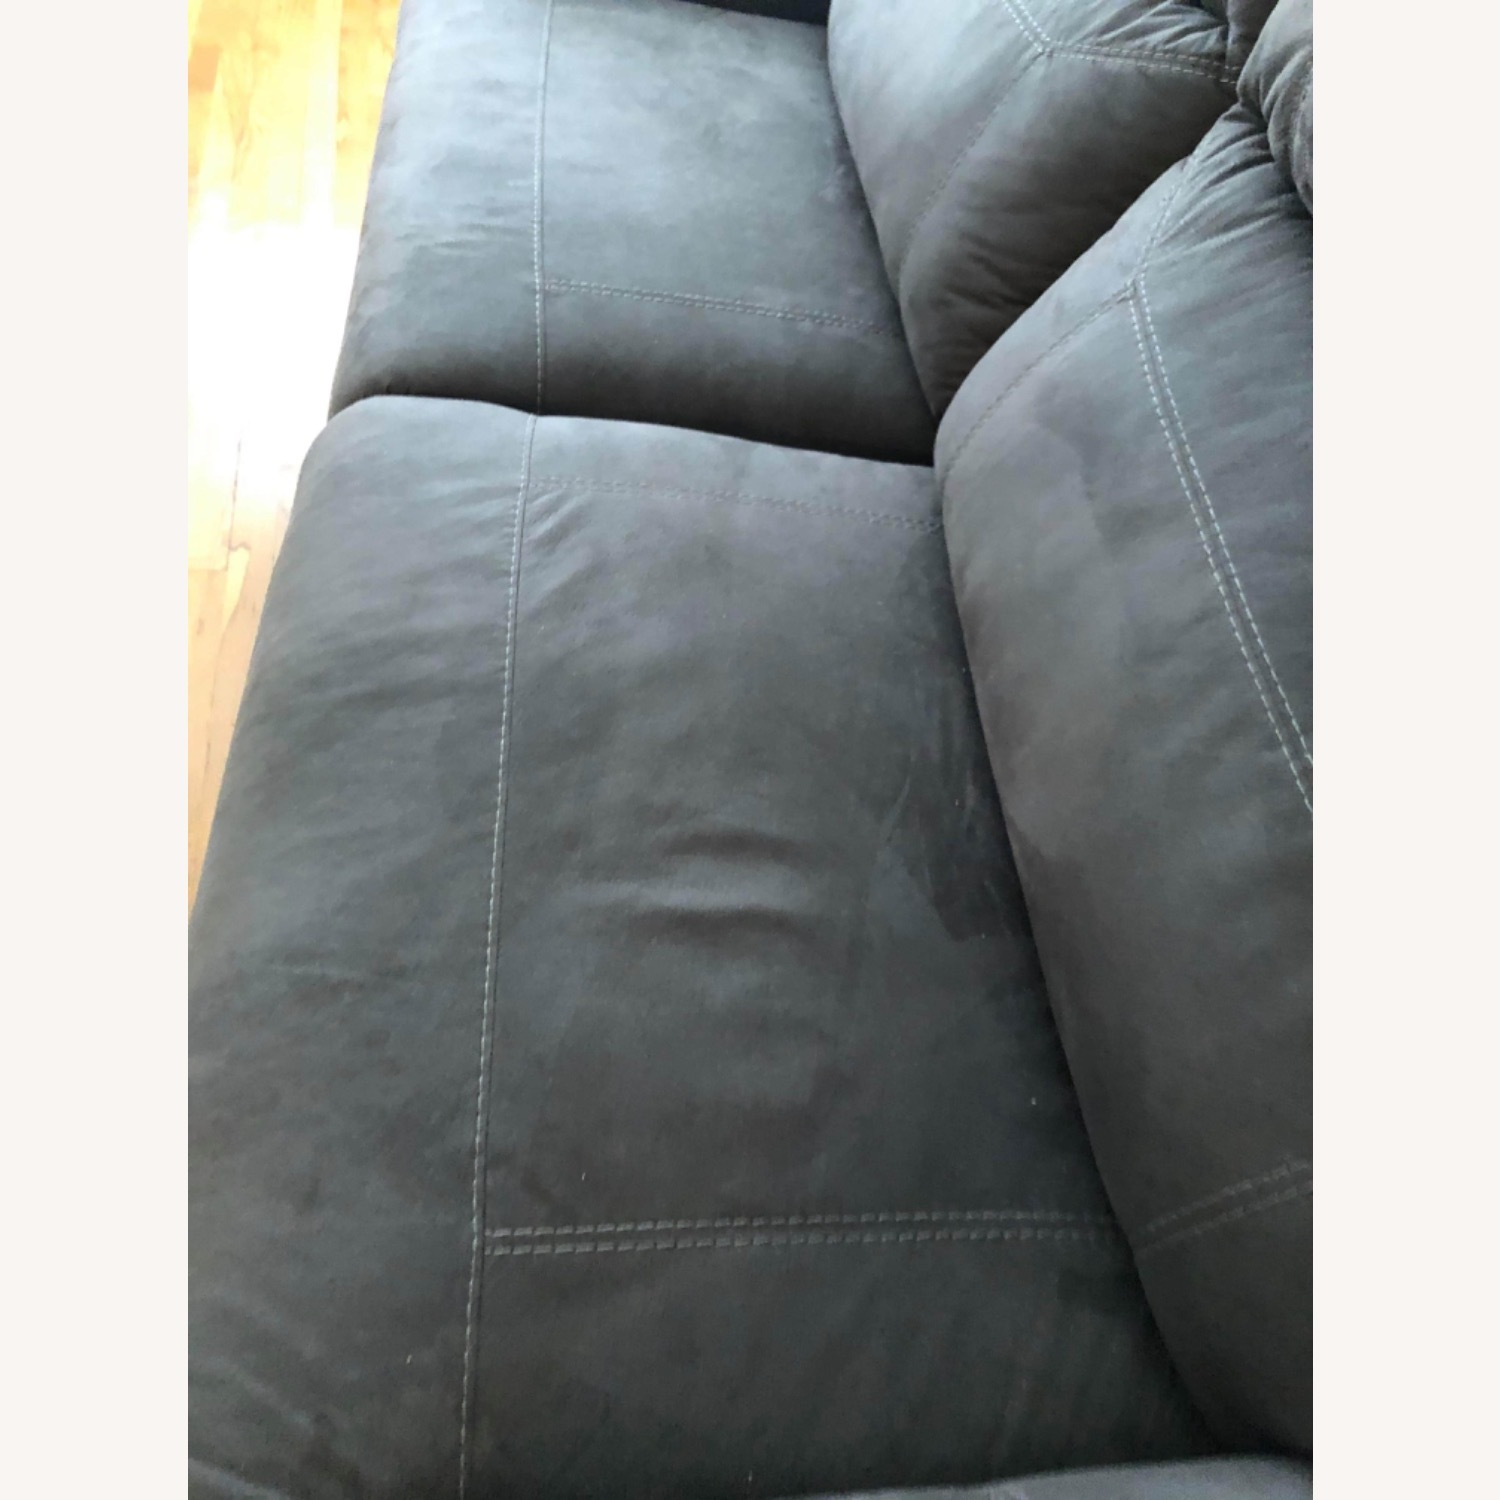 Wanek Furniture Company Electric Recliner Sofa - image-9